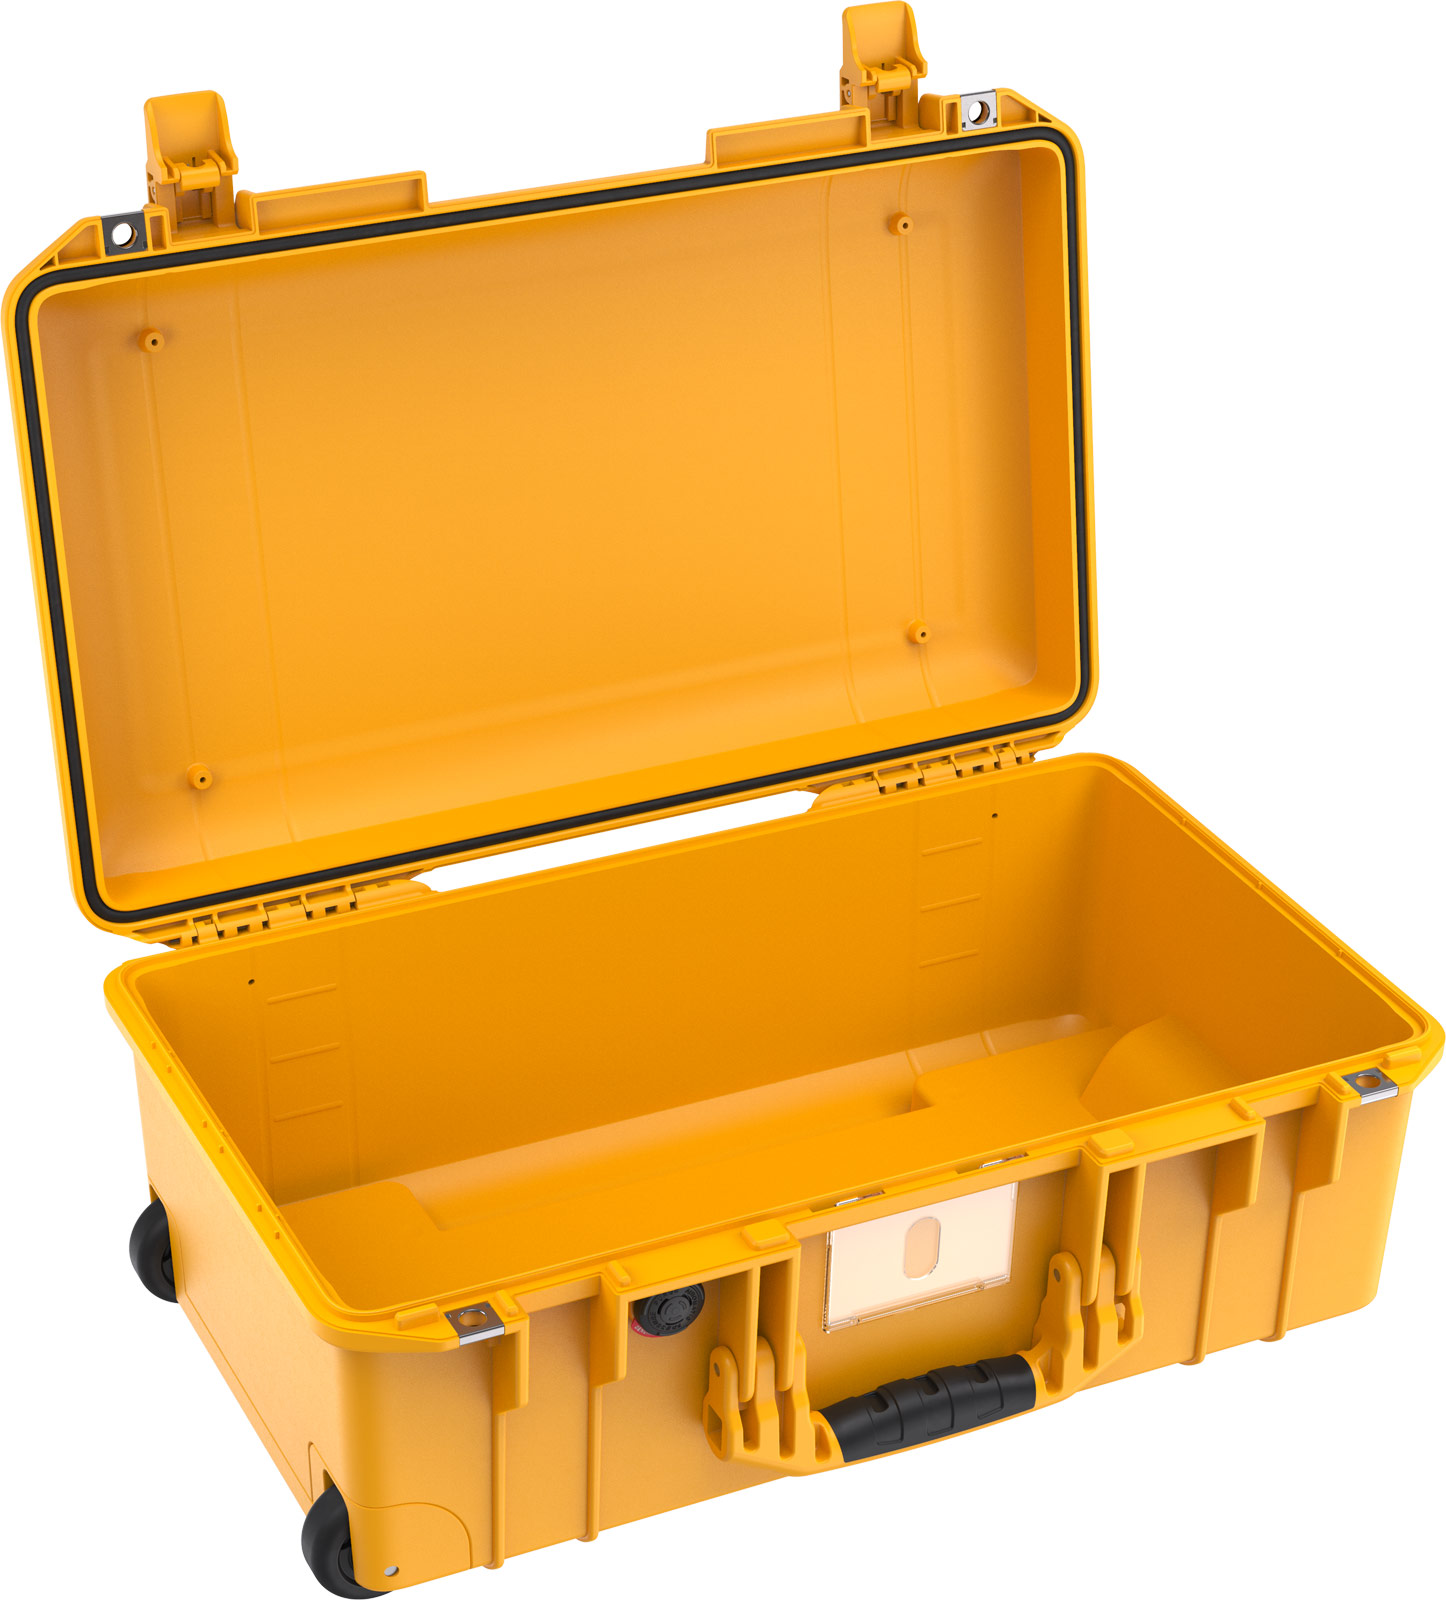 buy pelican air 1535 shop yellow mobile lightweight case